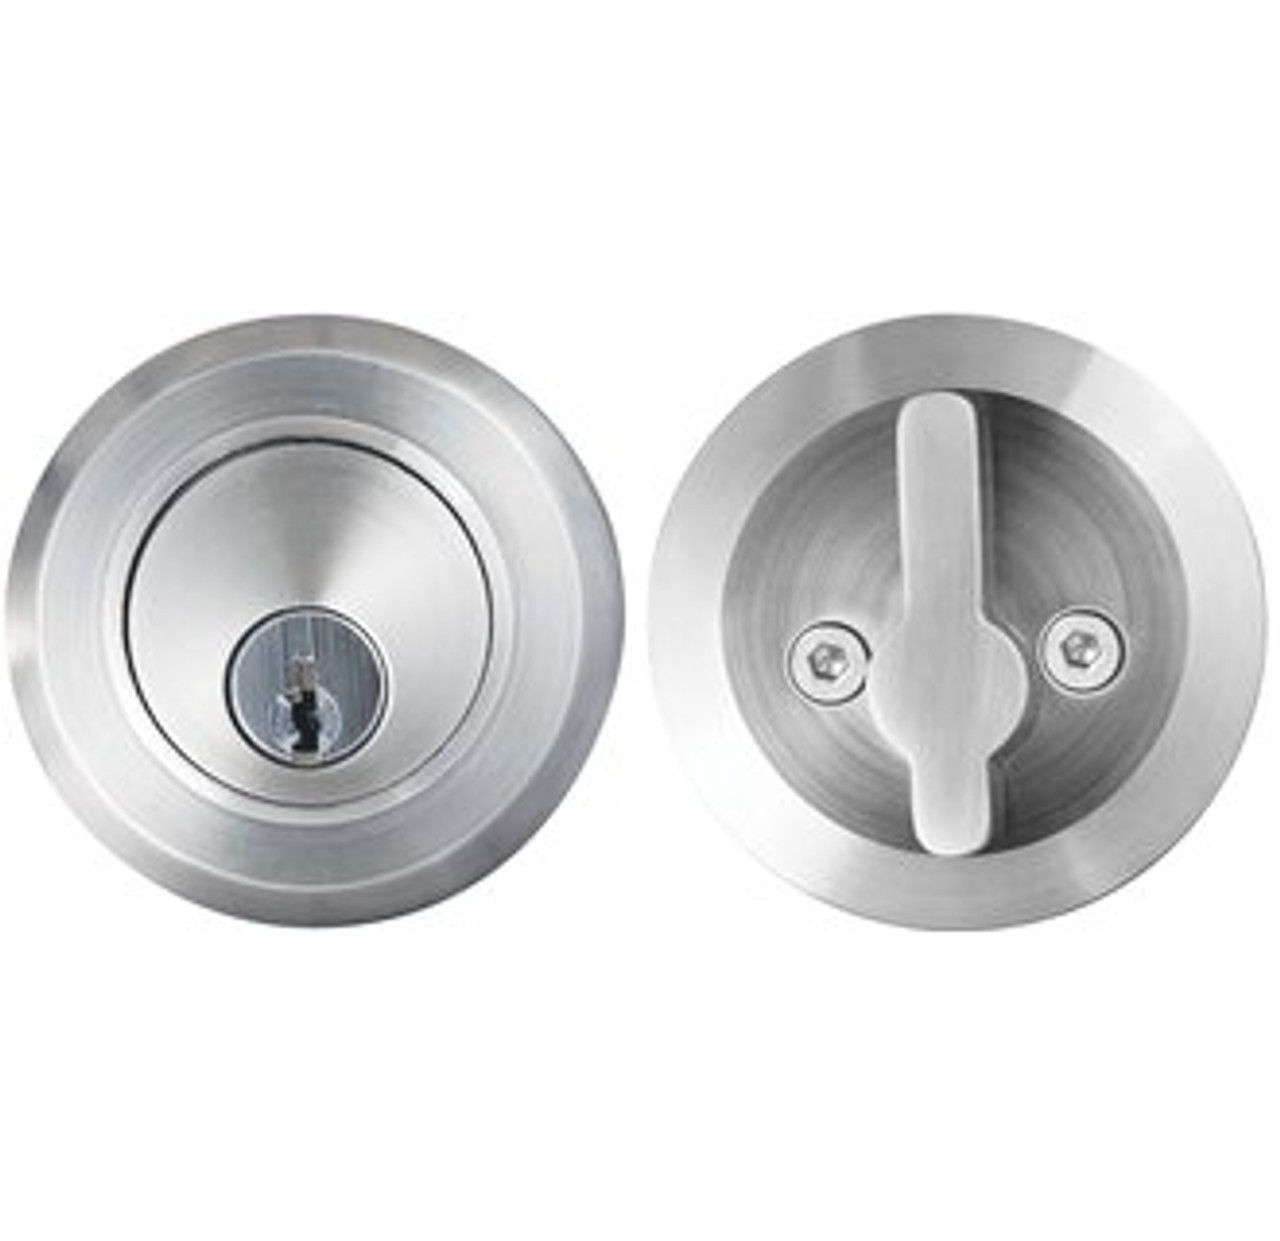 Stainless Steel Round Deadbolt For Thick Gates And Doors